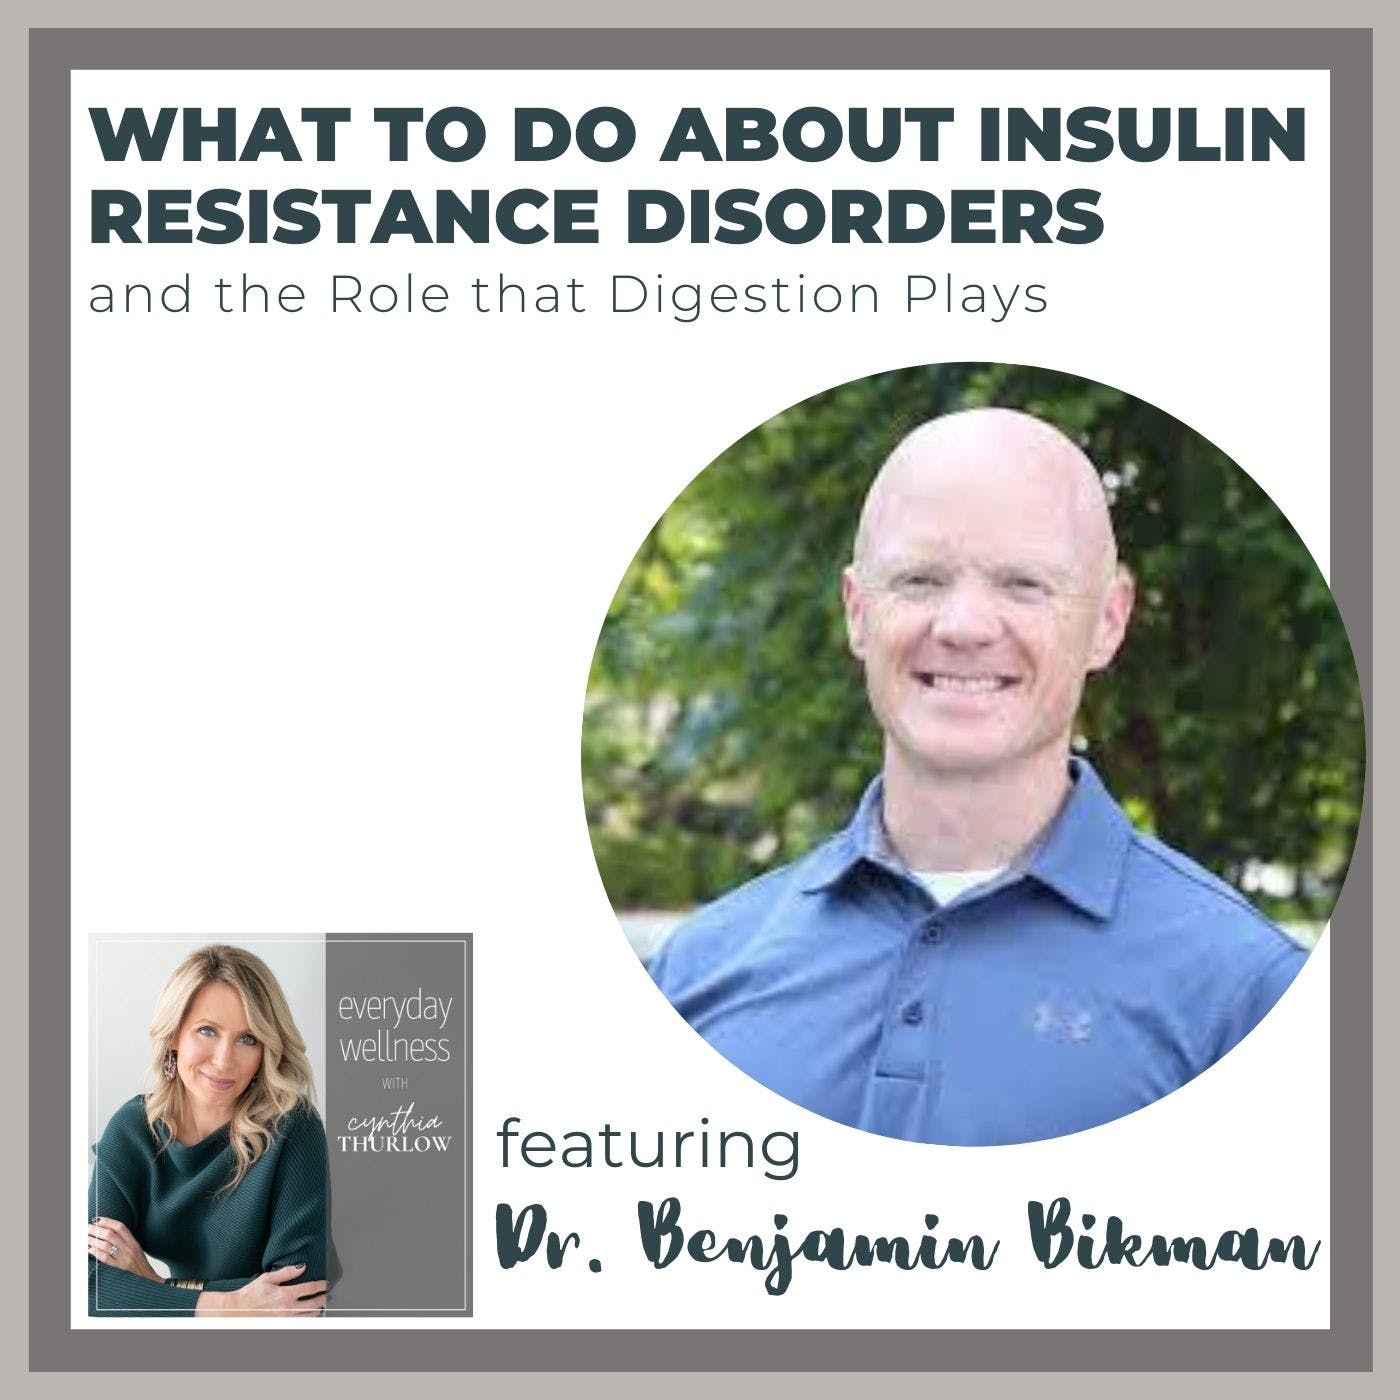 Ep. 168 What To Do About Insulin Resistance Disorders (and the Role that Digestion Plays) with Dr. Benjamin Bikman